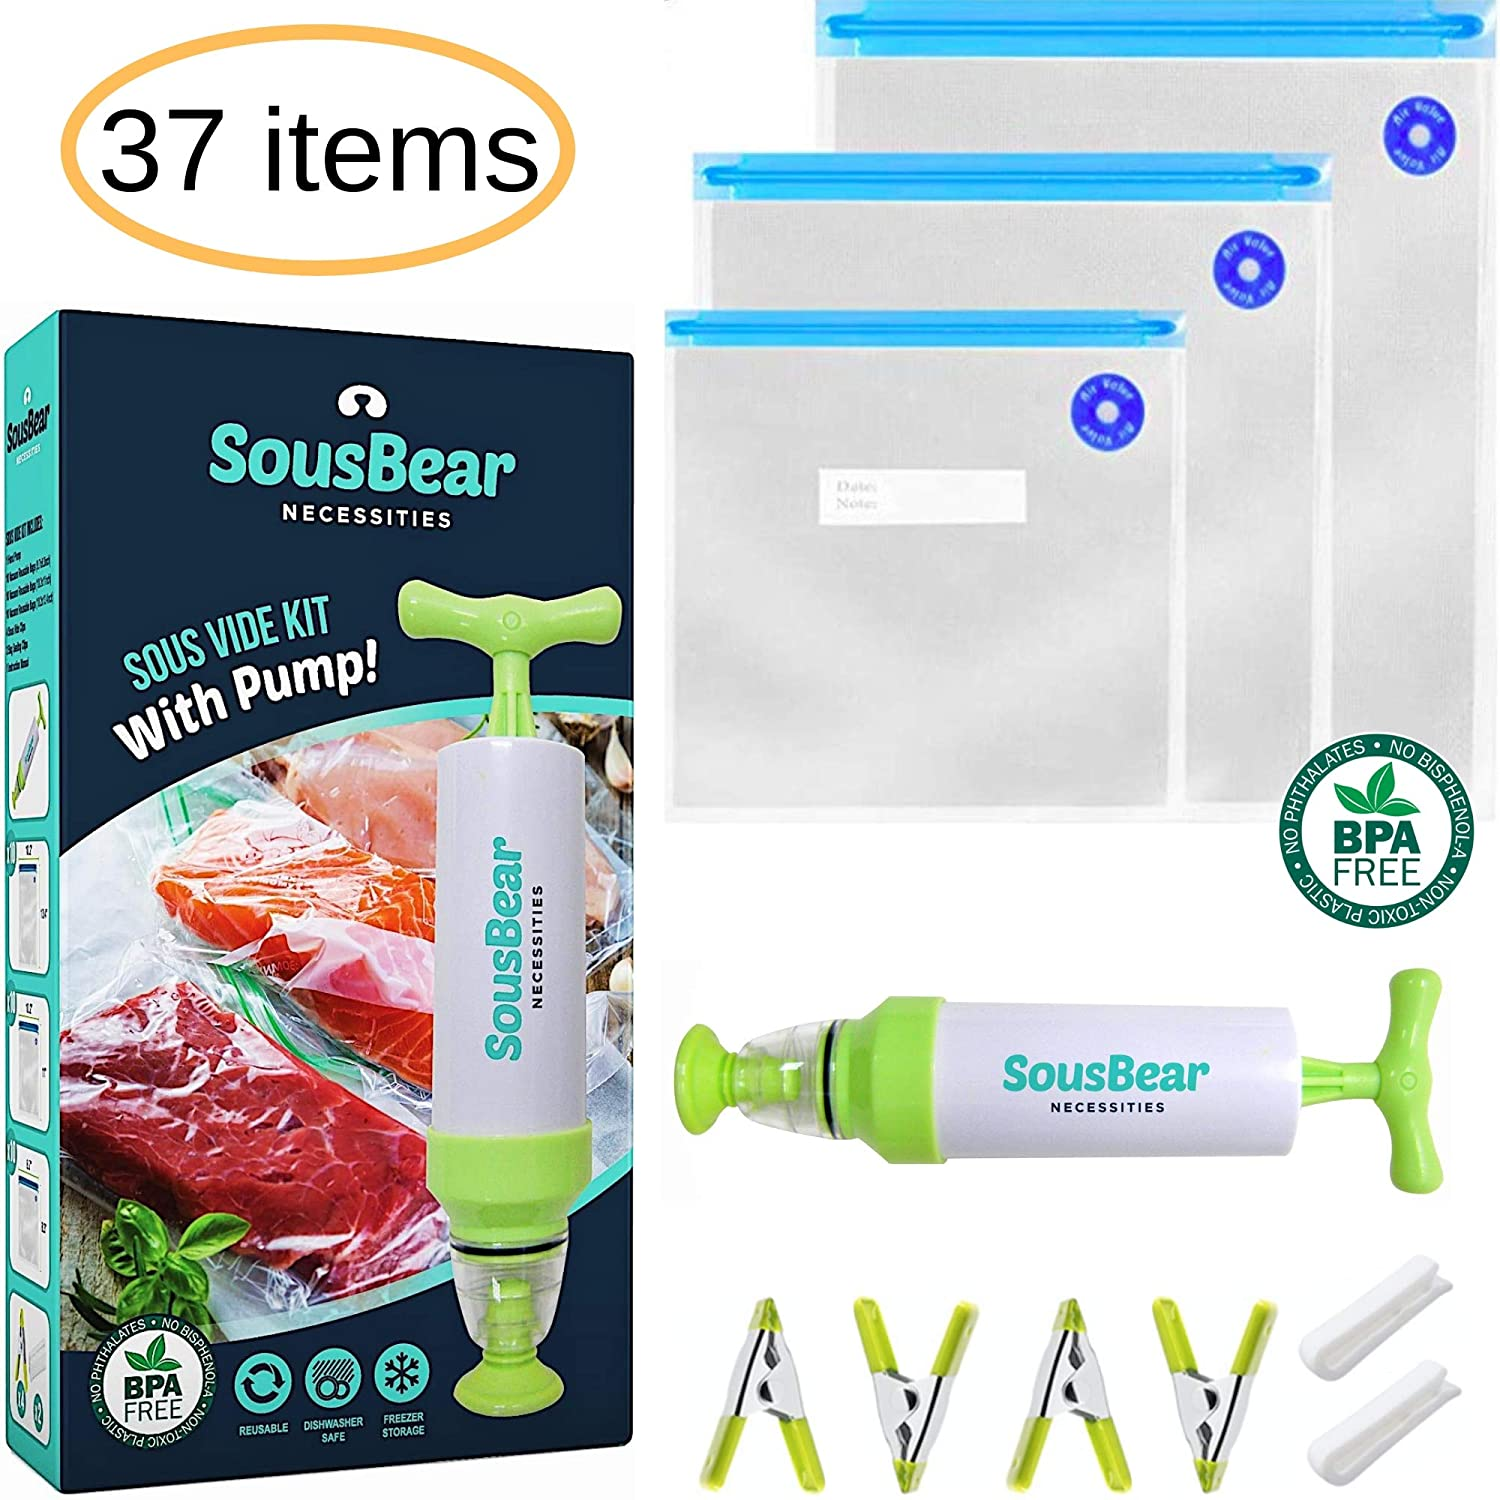 Sous Vide Bags BPA Free 30 Reusable Vacuum Food Storage Bags - 3 Sizes Sous Vide Bag Large Kit for Anova, Joule Cookers